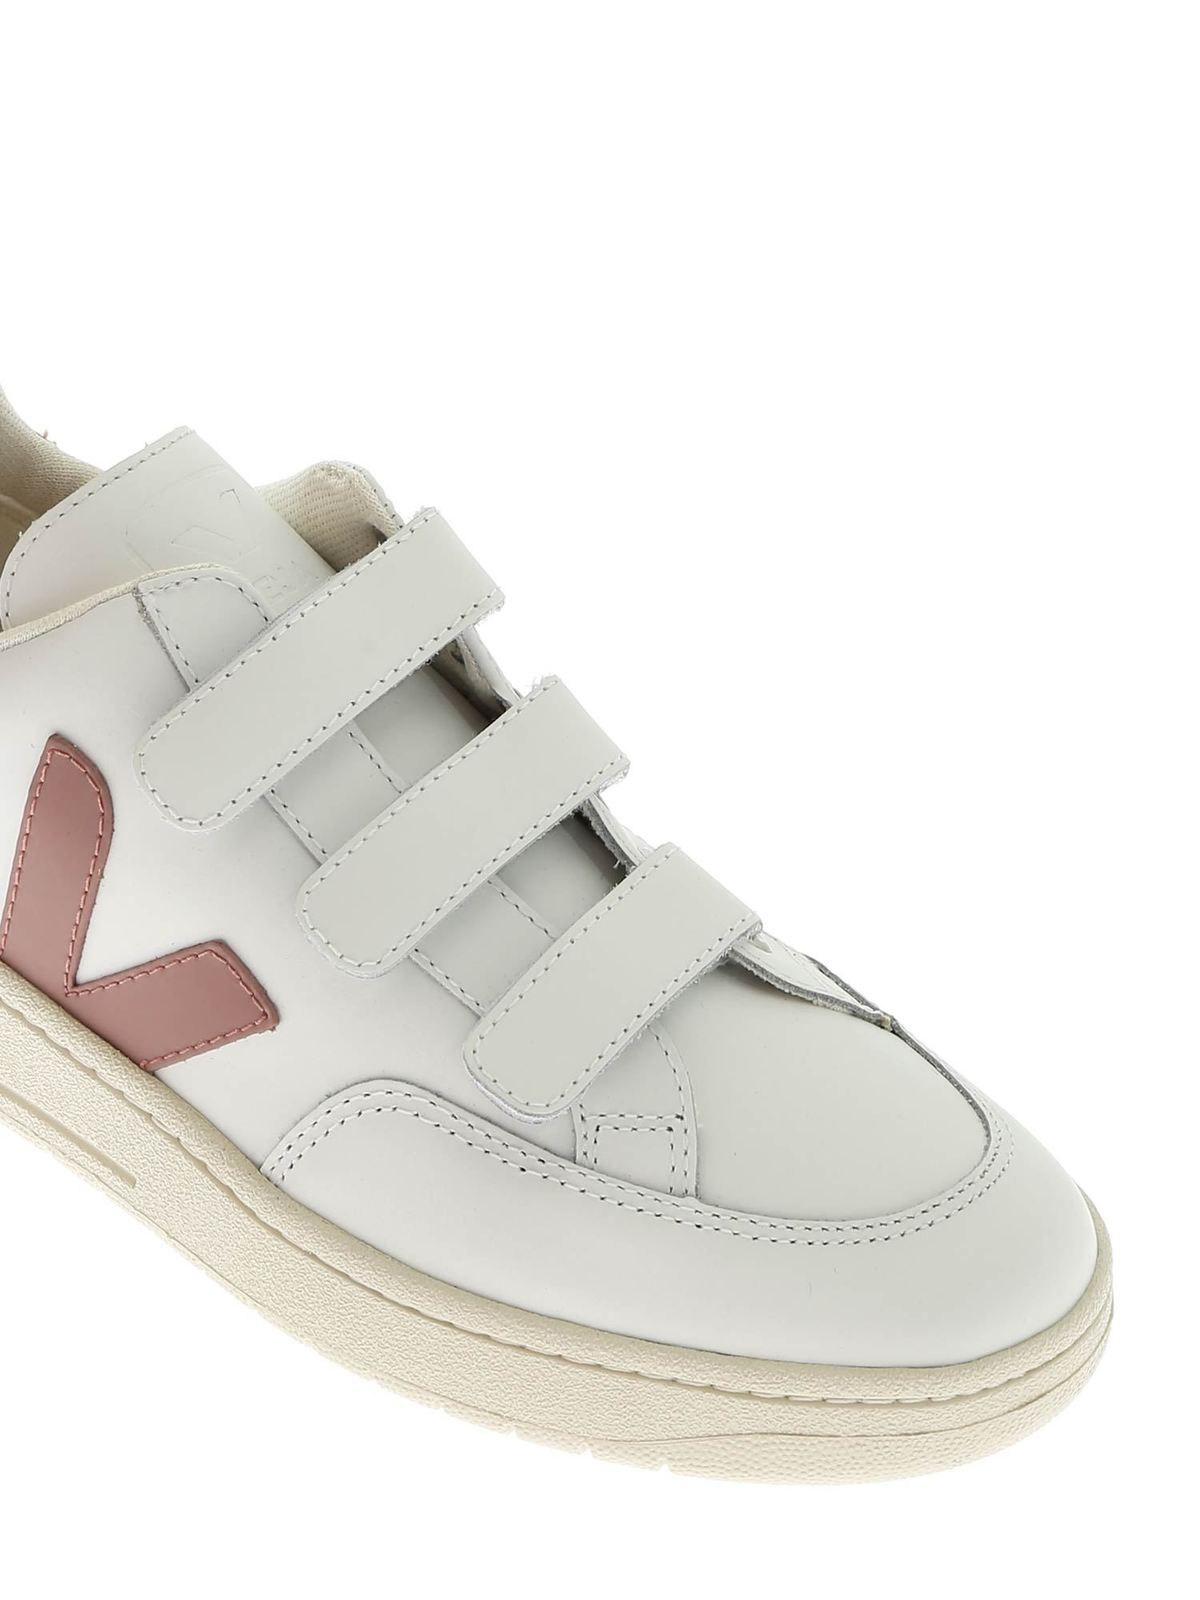 mundo Mensajero Armstrong  Veja - V-Lock sneakers in white with pink V - trainers - XC021599